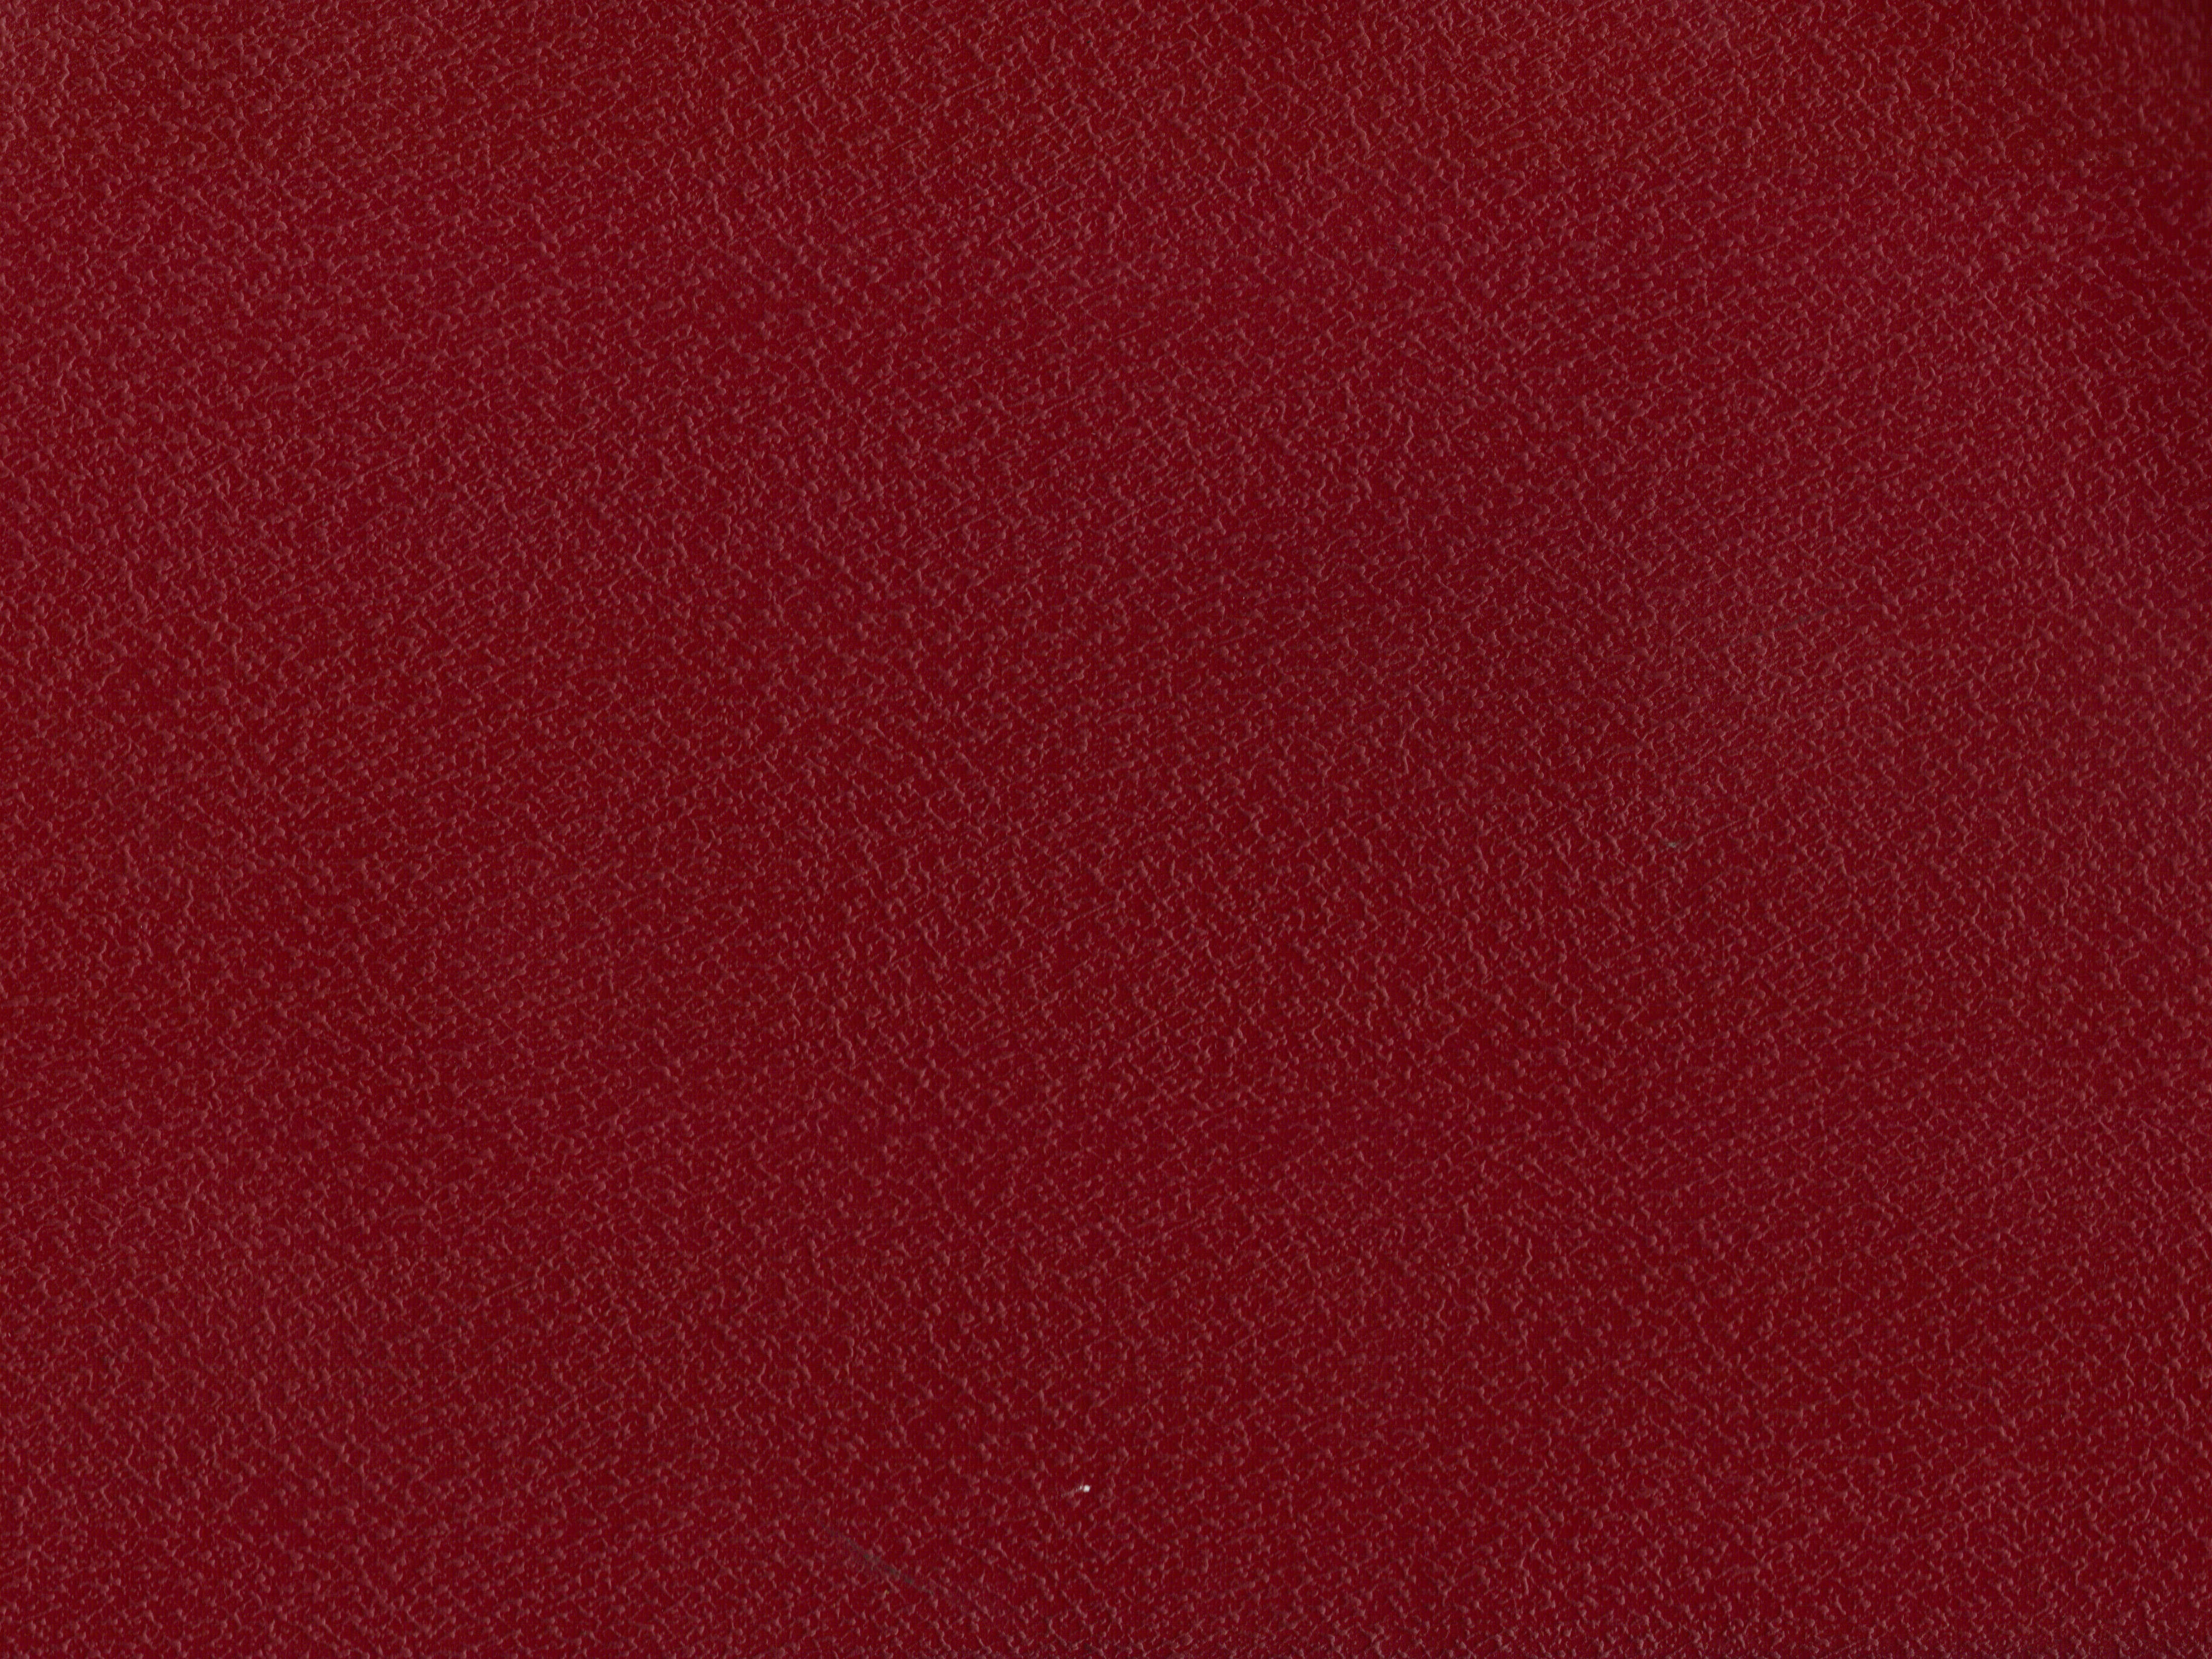 Dark red leather background free stock photos